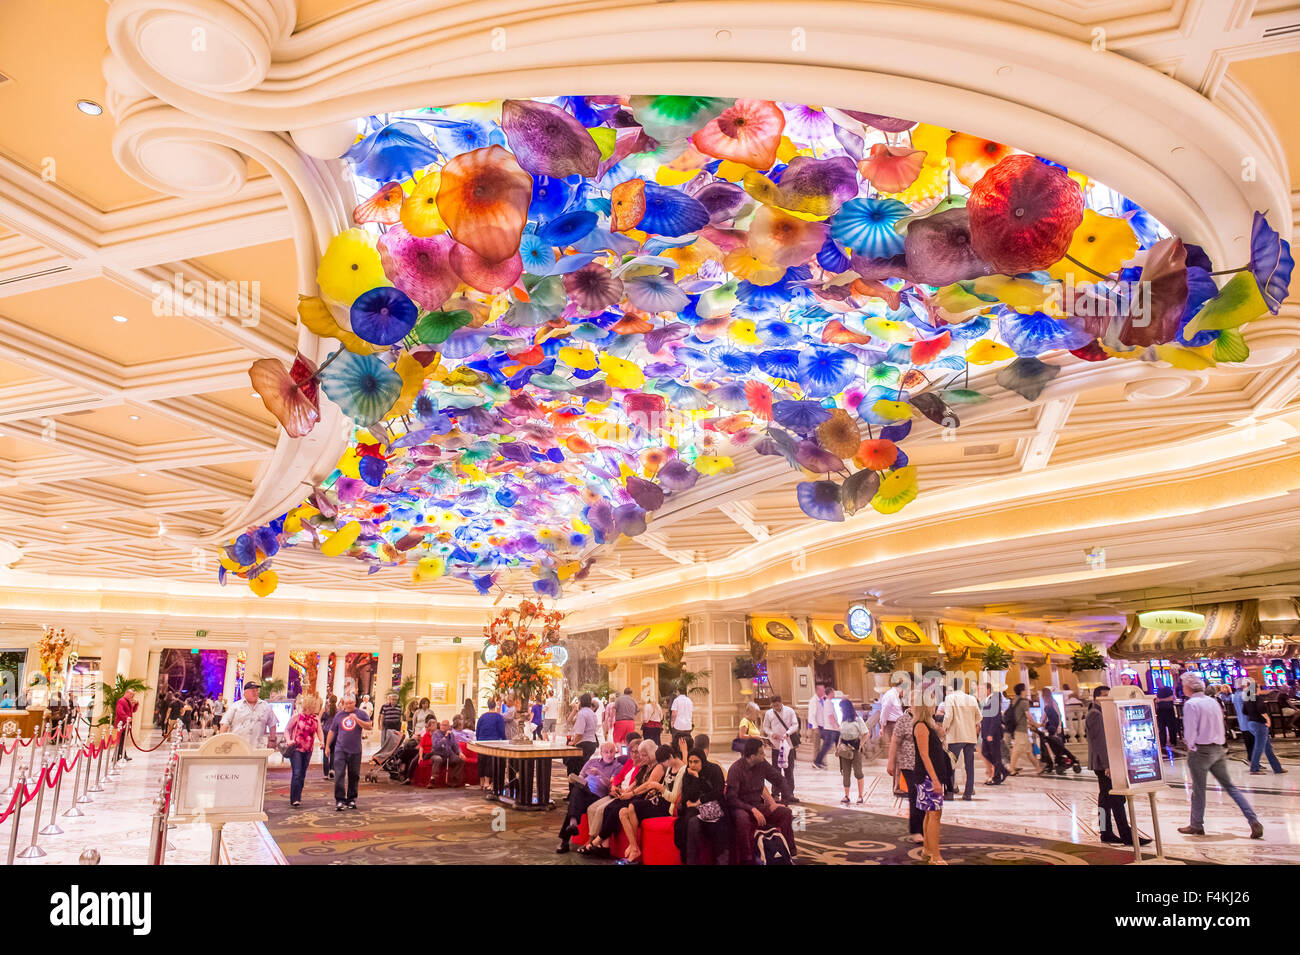 Bellagio las vegas casino hotel procter and gamble about